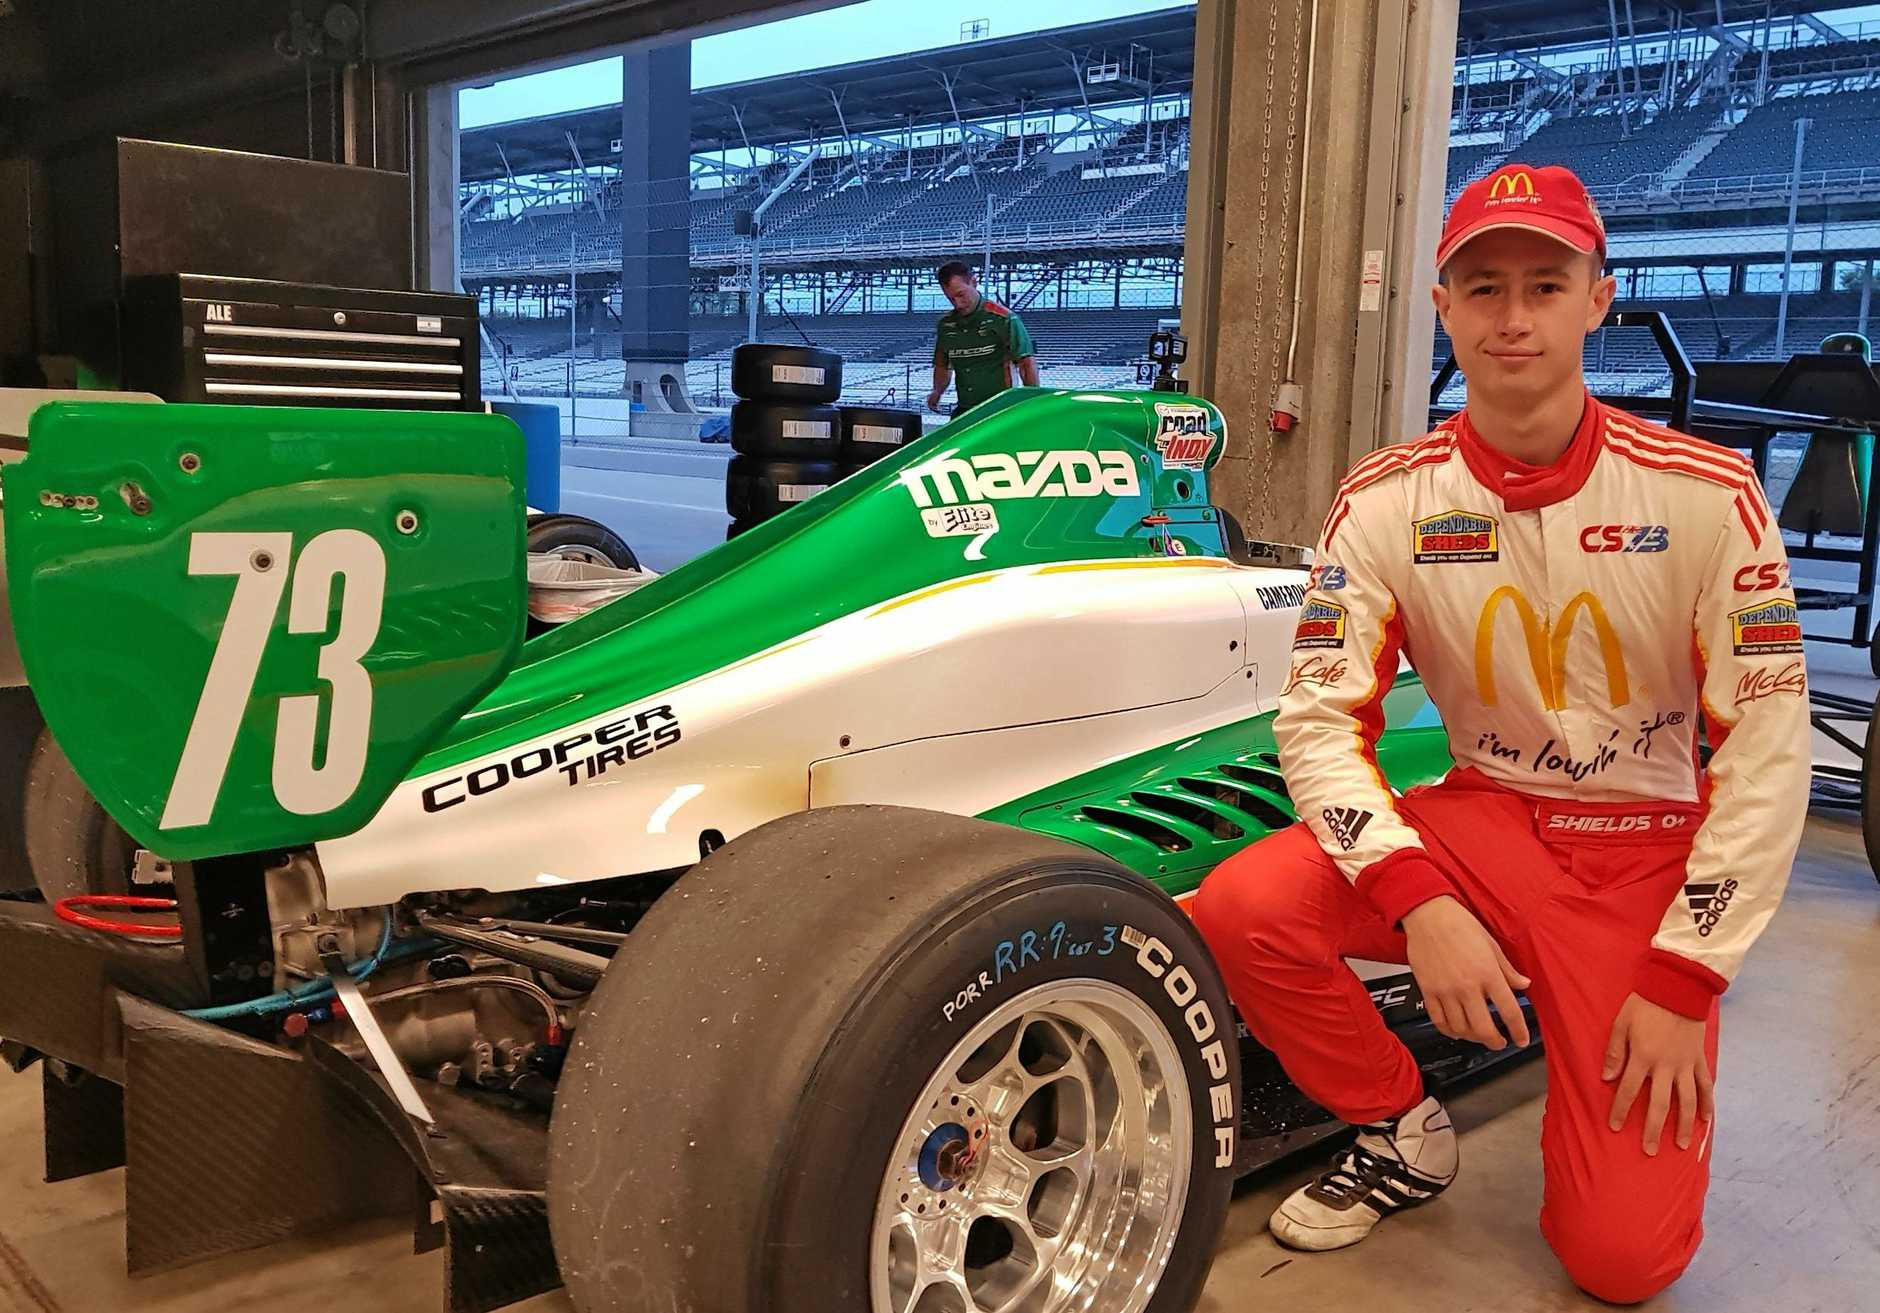 Toowoomba's Cameron Shields has set his sights on IndyCar racing after testing for Juncos Racing at the Indianapolis Motor Speedway.